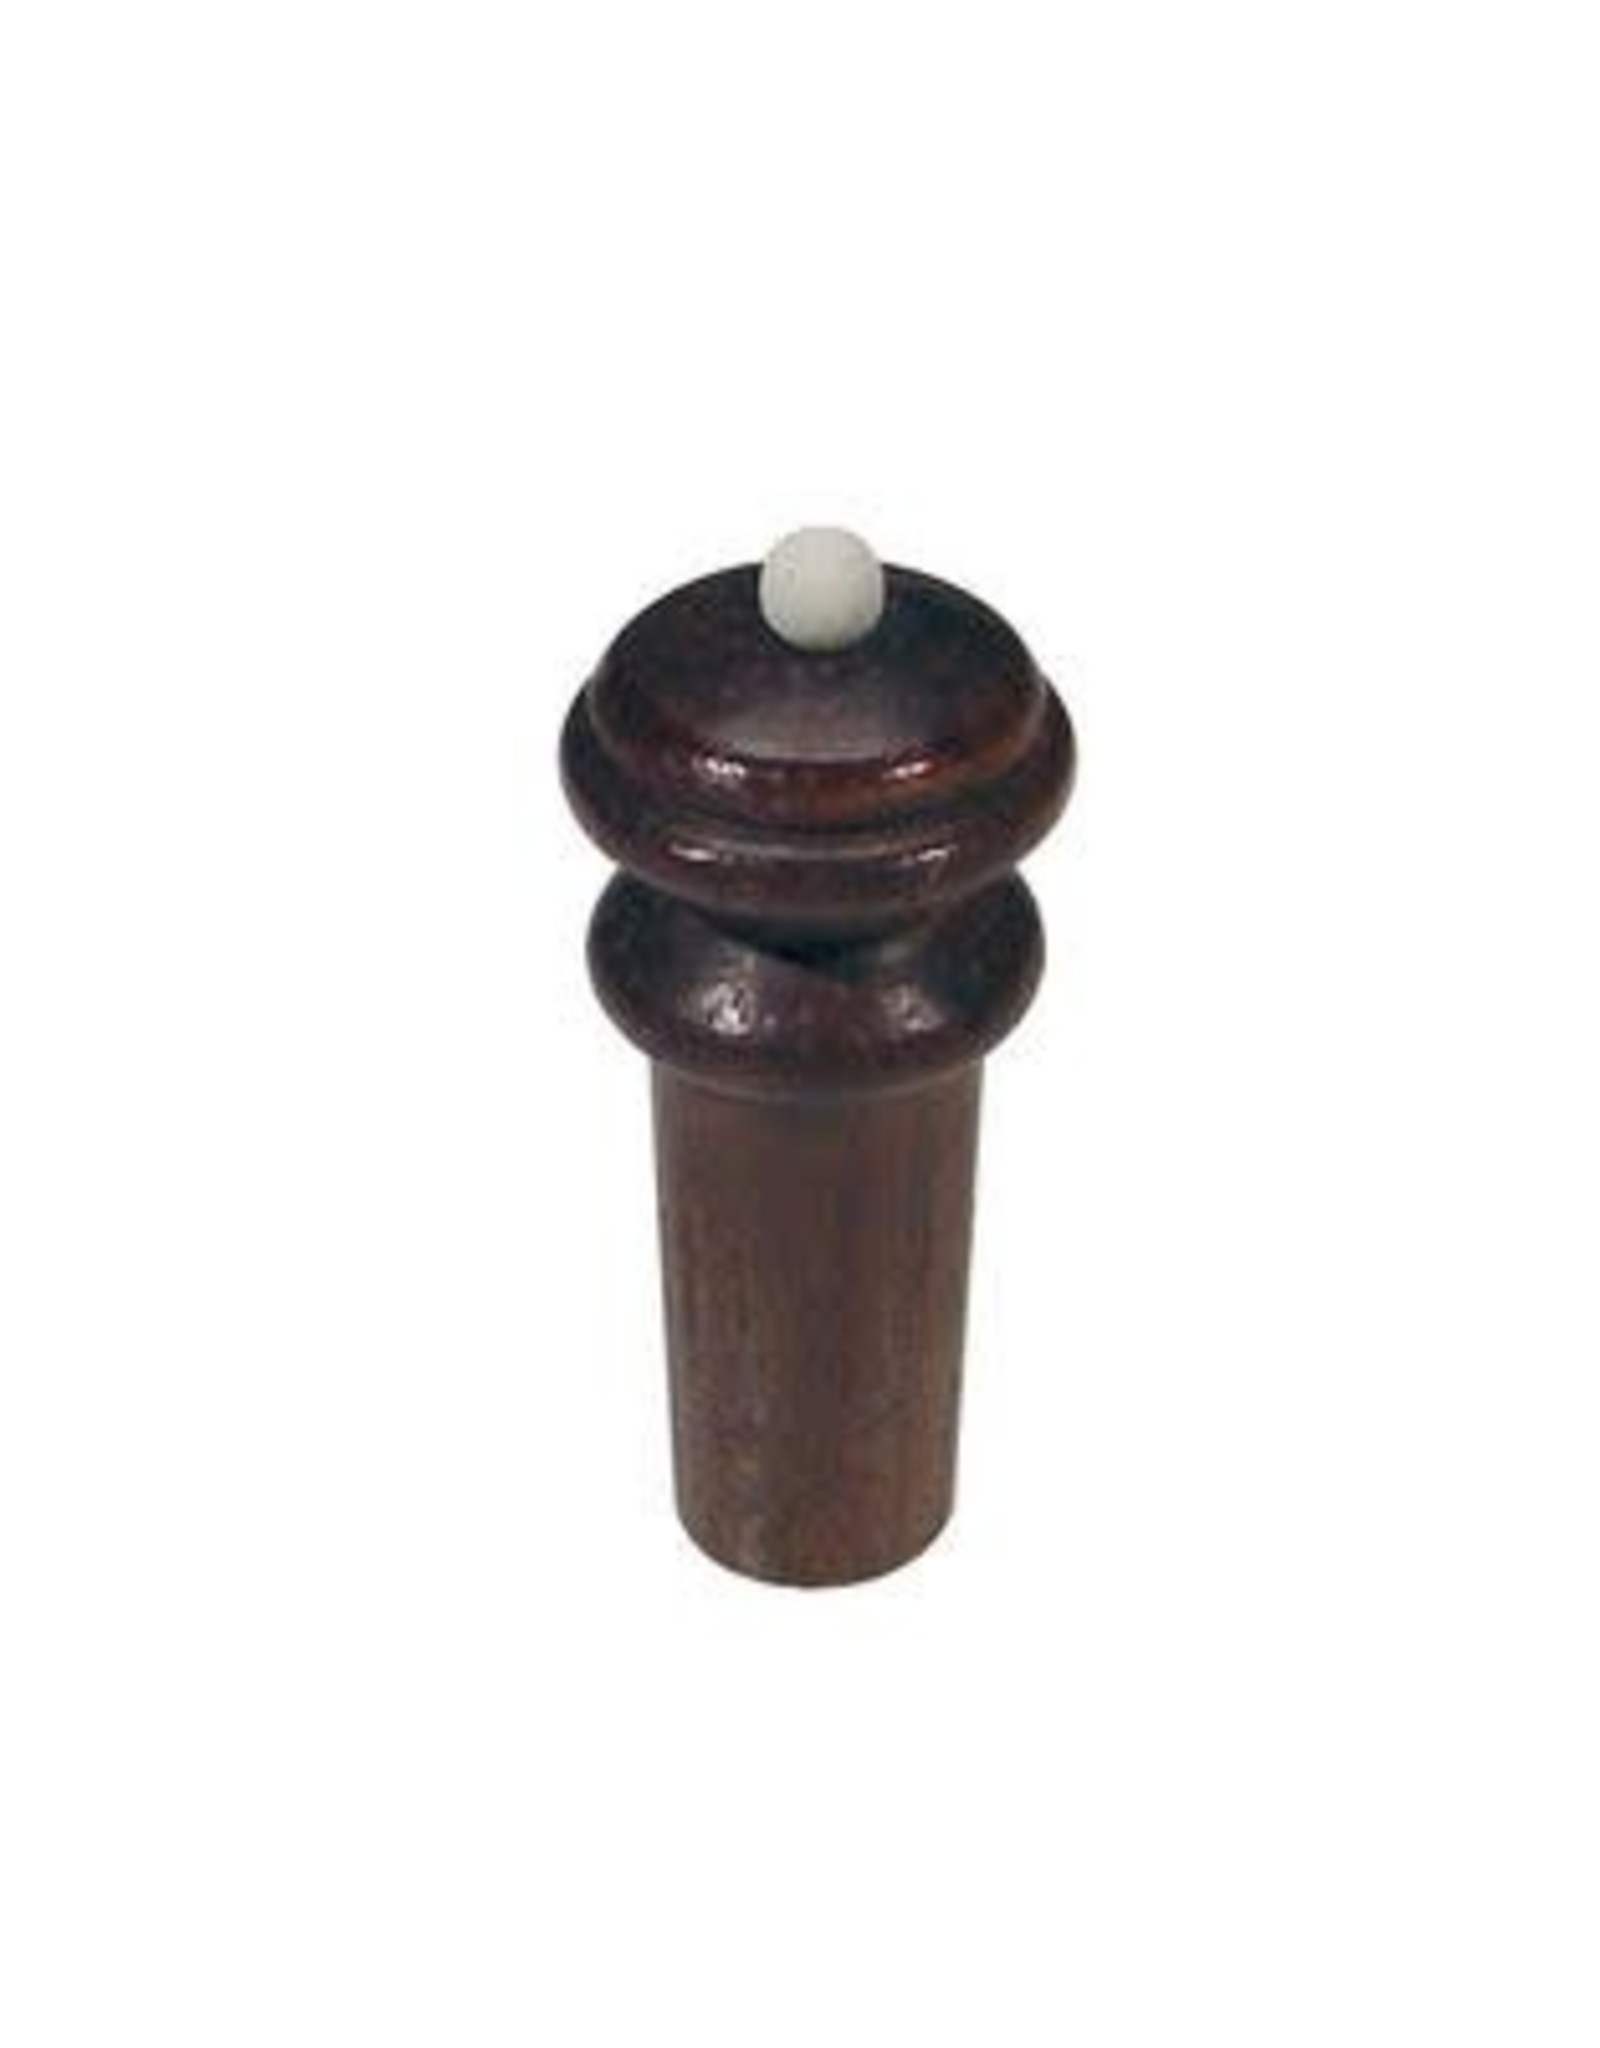 Violin endpin, 4/4-3/4, in rosewood, medium, hill model, with white ba - art. EV-22442RW 7070